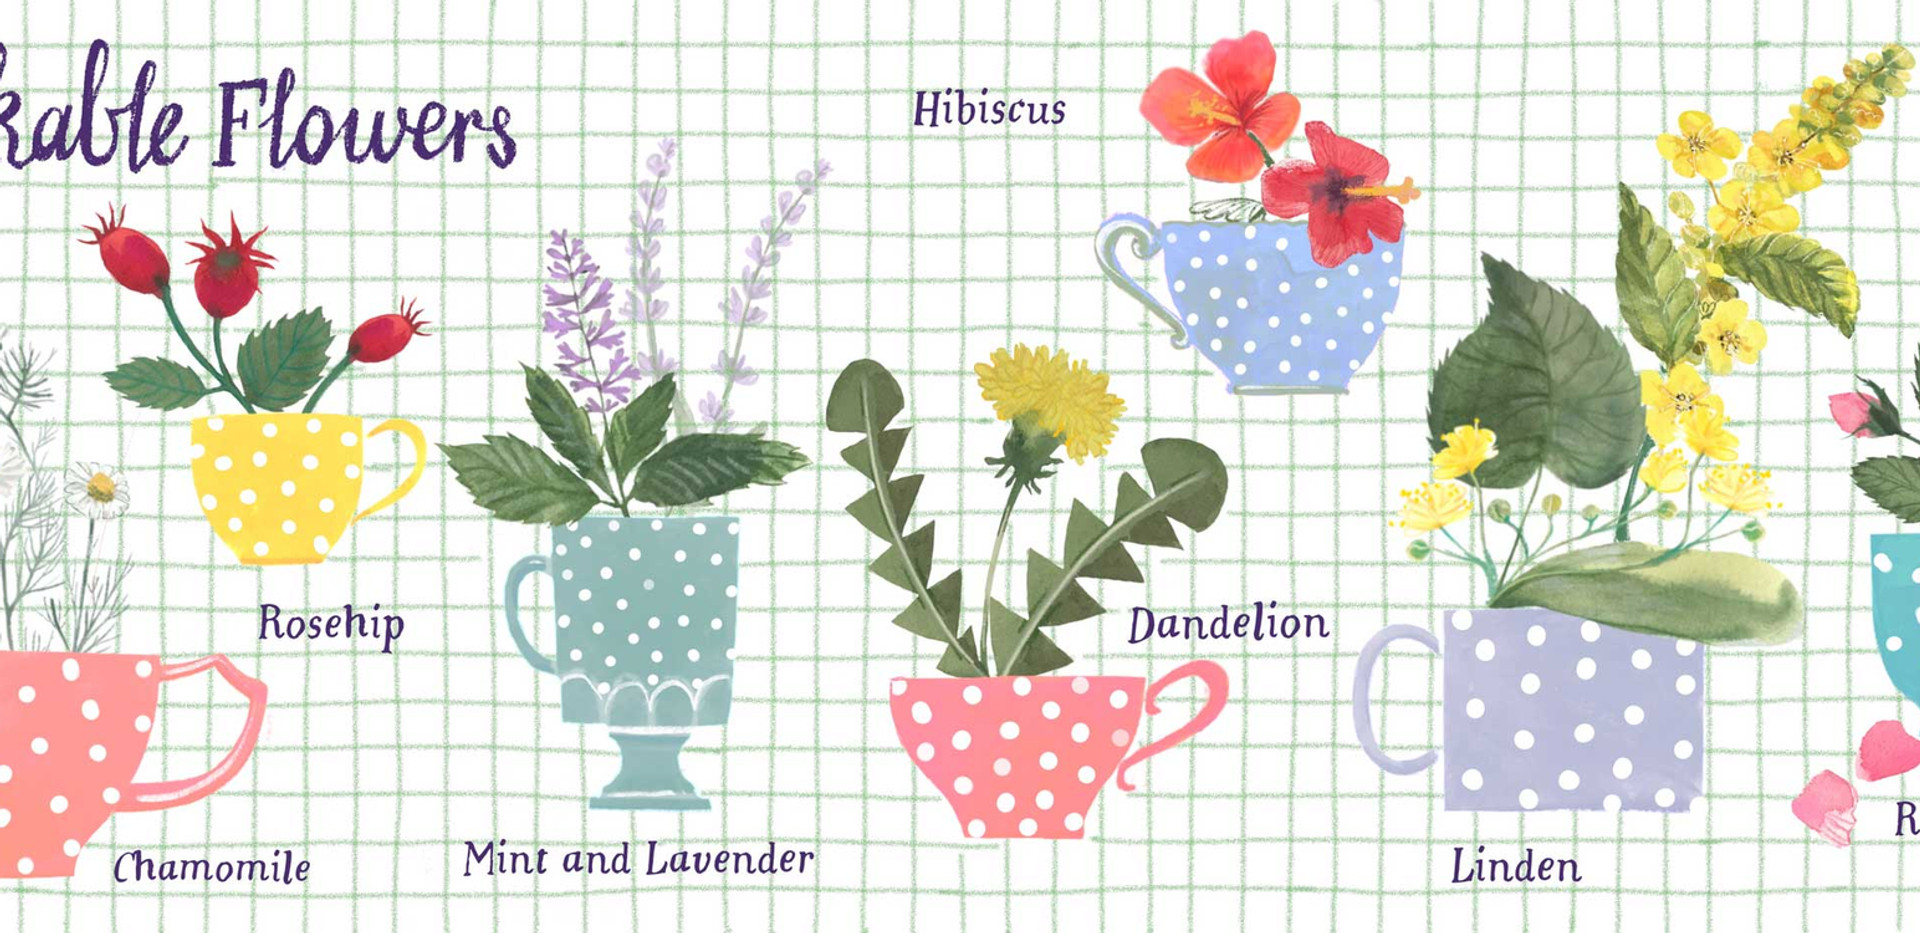 Drinkable flowers double spread illustration for TDAC